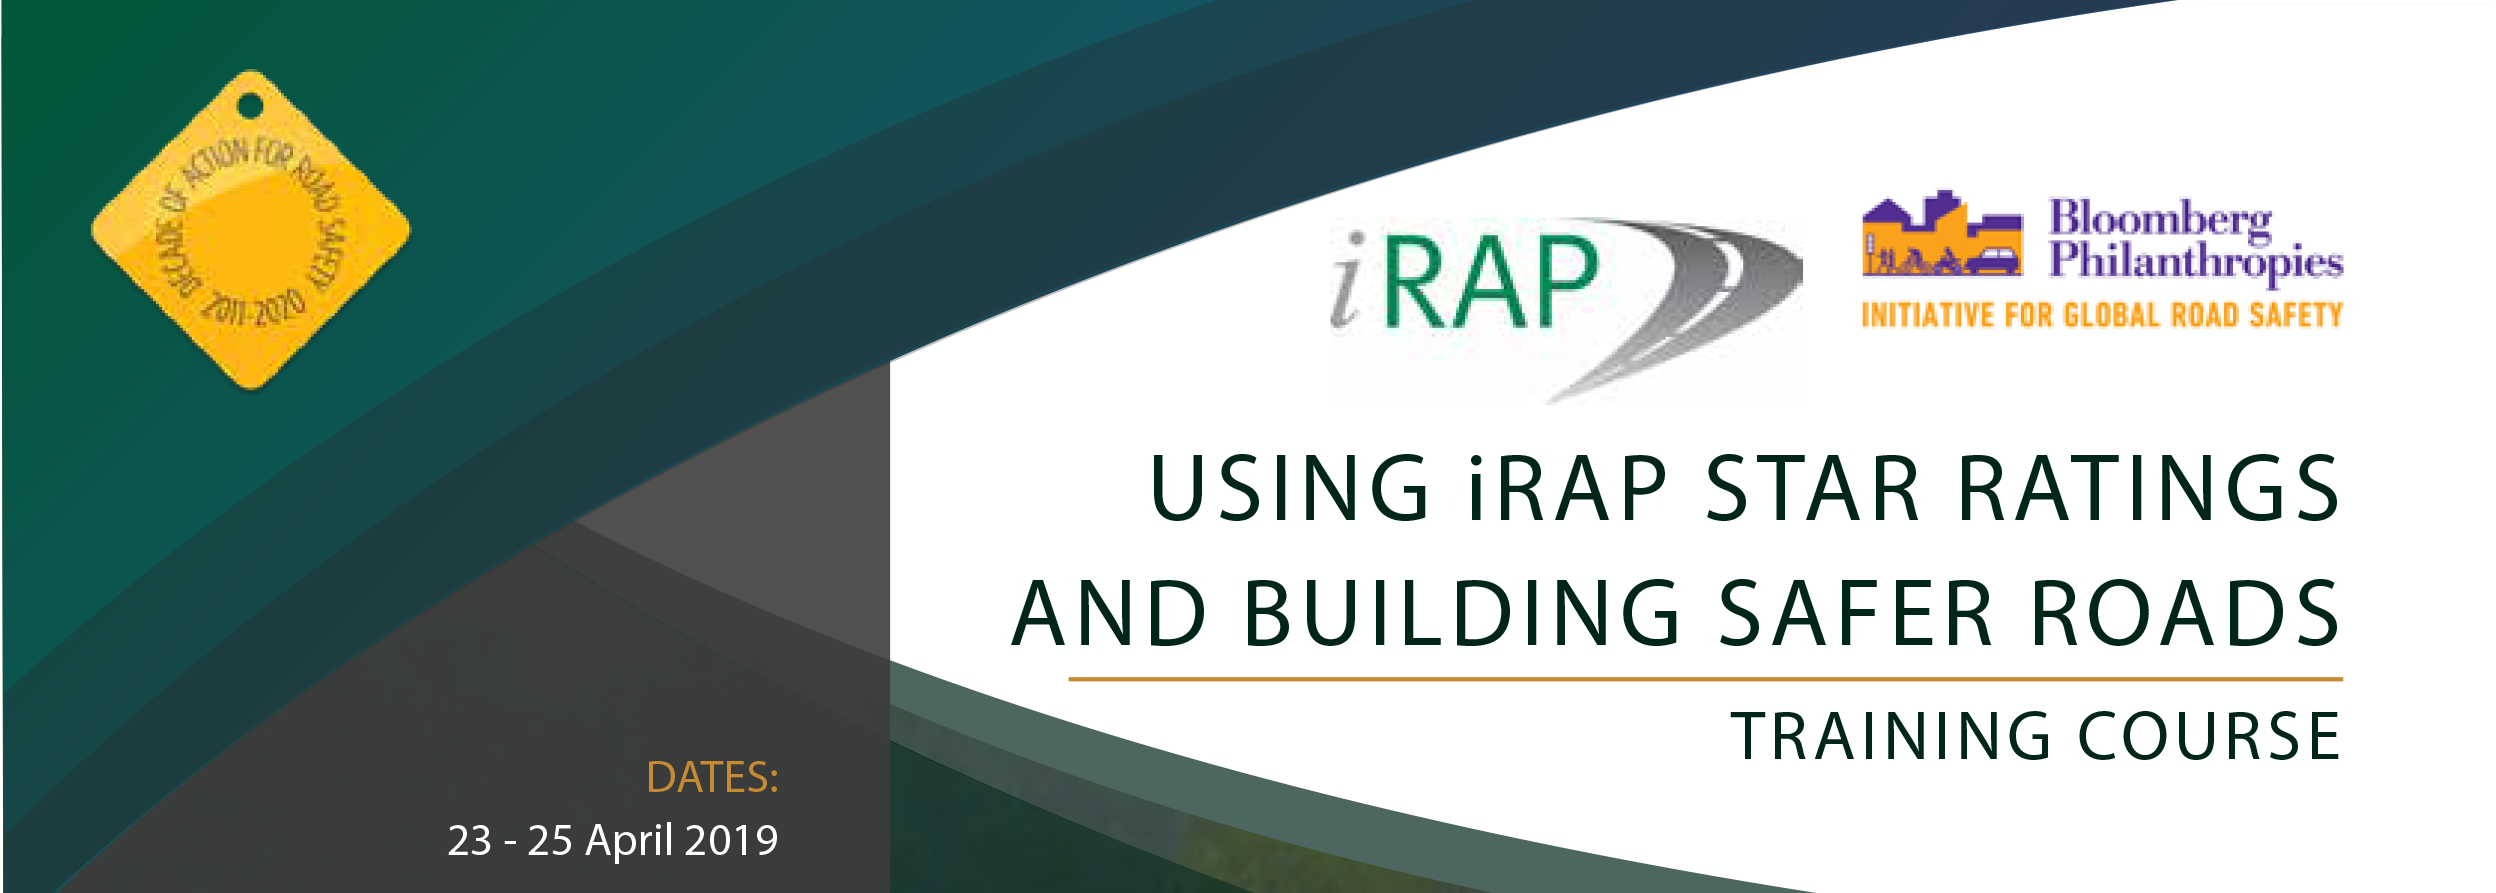 Upcoming Training Course: Using iRAP Star Ratings and Building Safer Roads (April 2019)